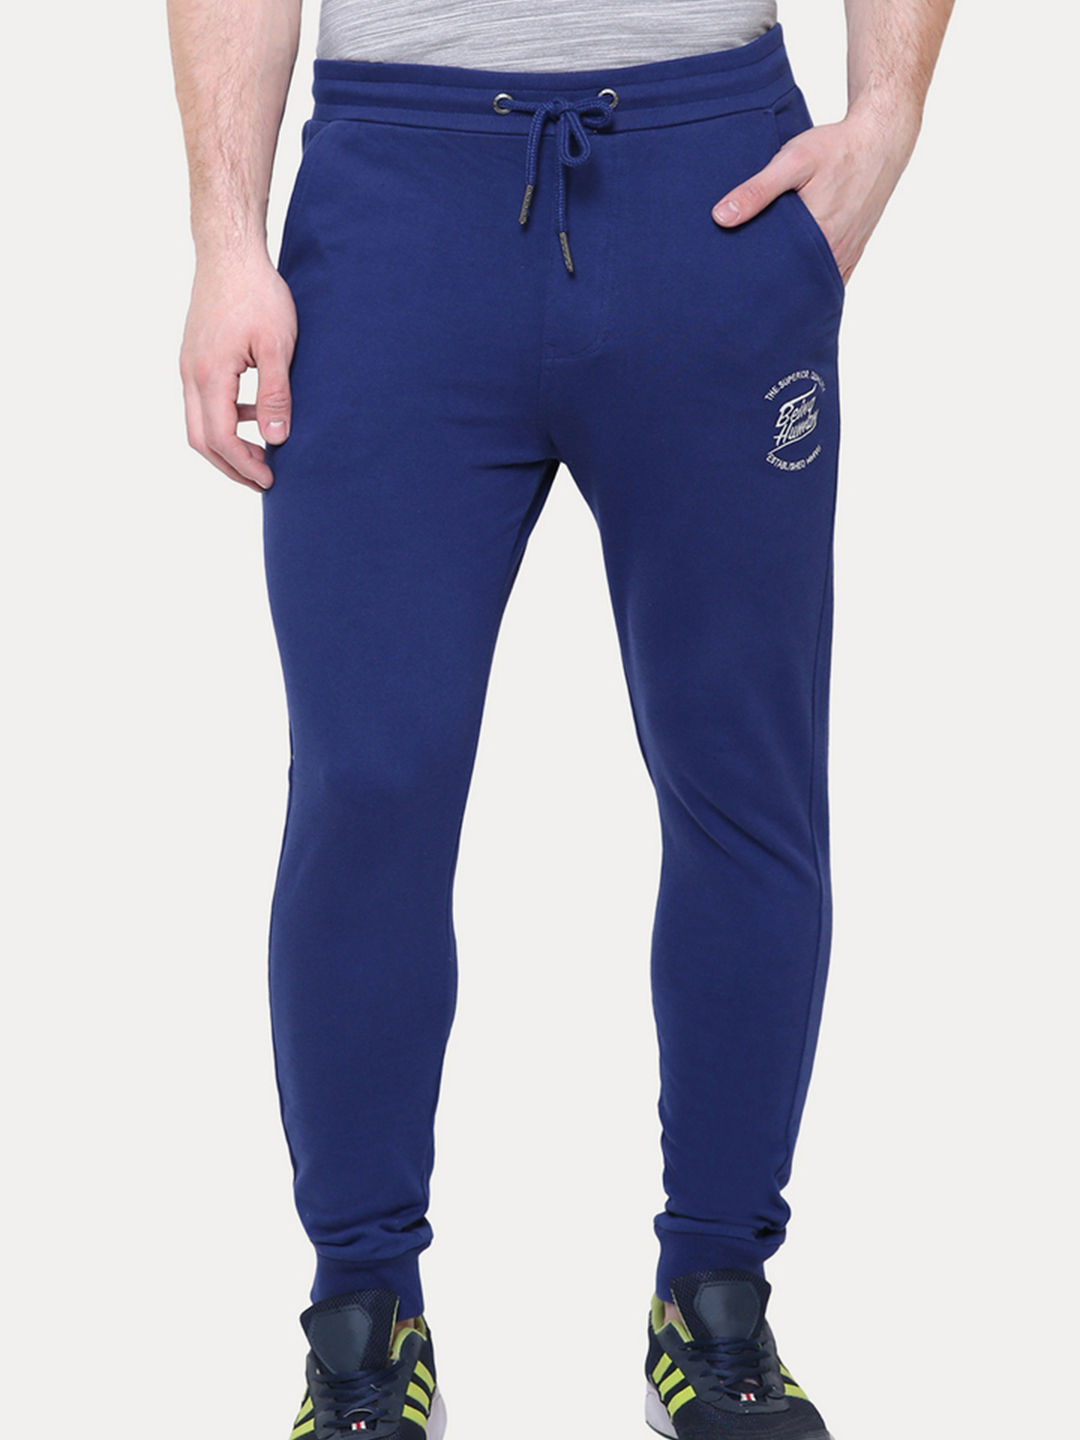 INK BLUE SOLID JOGGERS